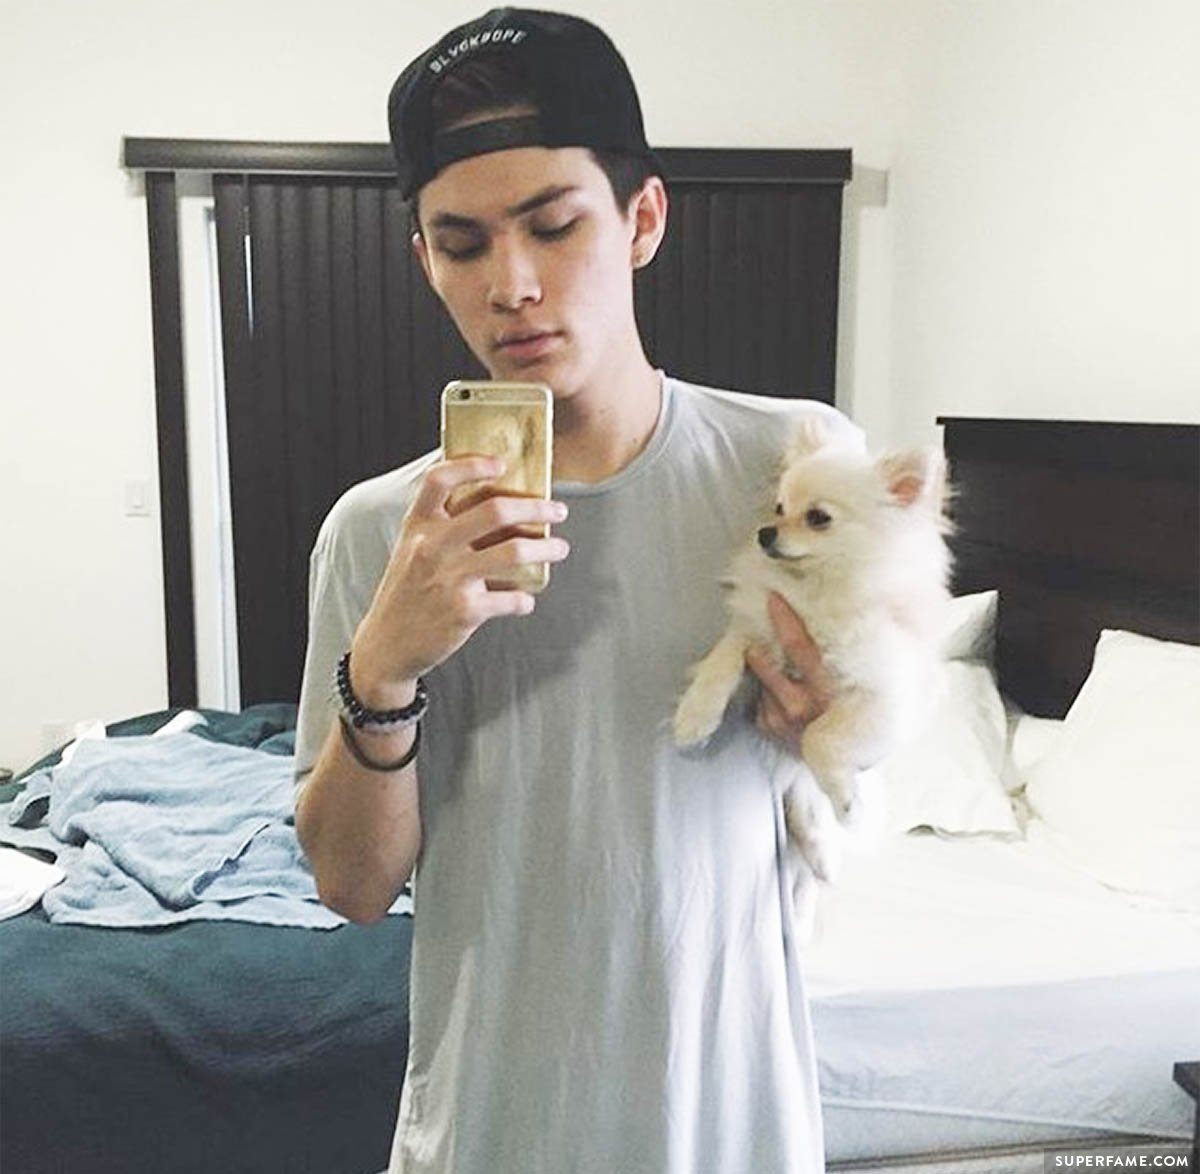 Carter Reynolds holds a dog.